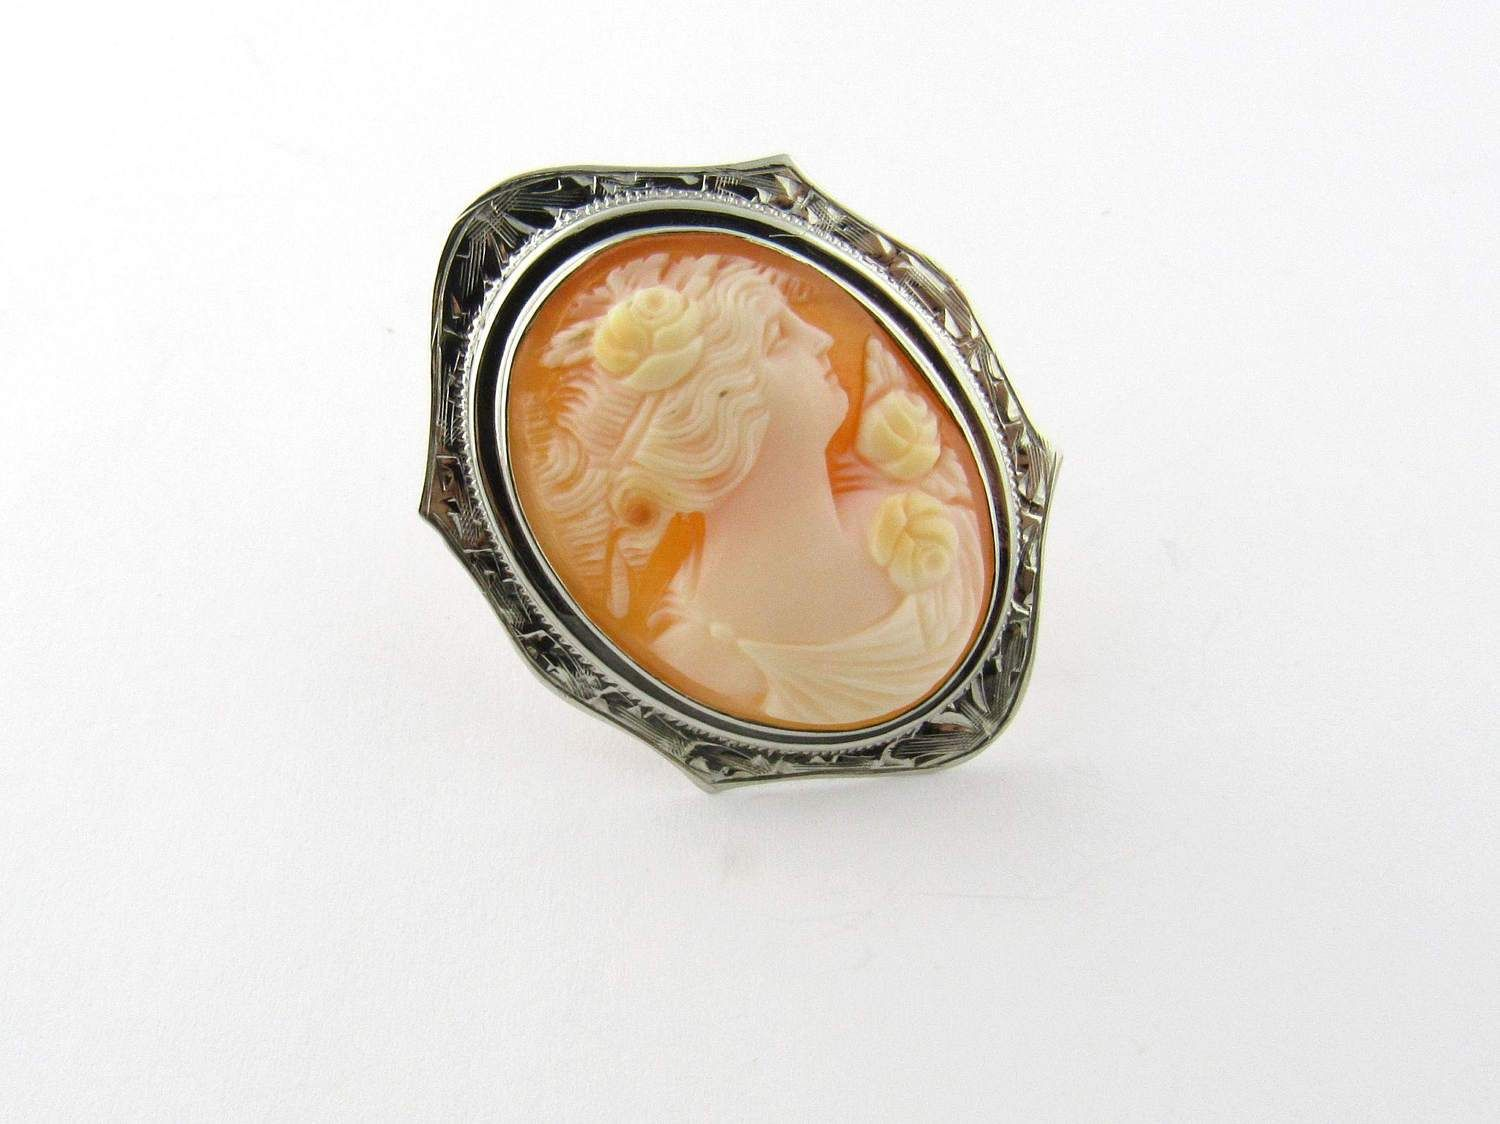 Vintage 10k White Gold Cameo Pin 1275 White Gold Vintage Jewelry Gold